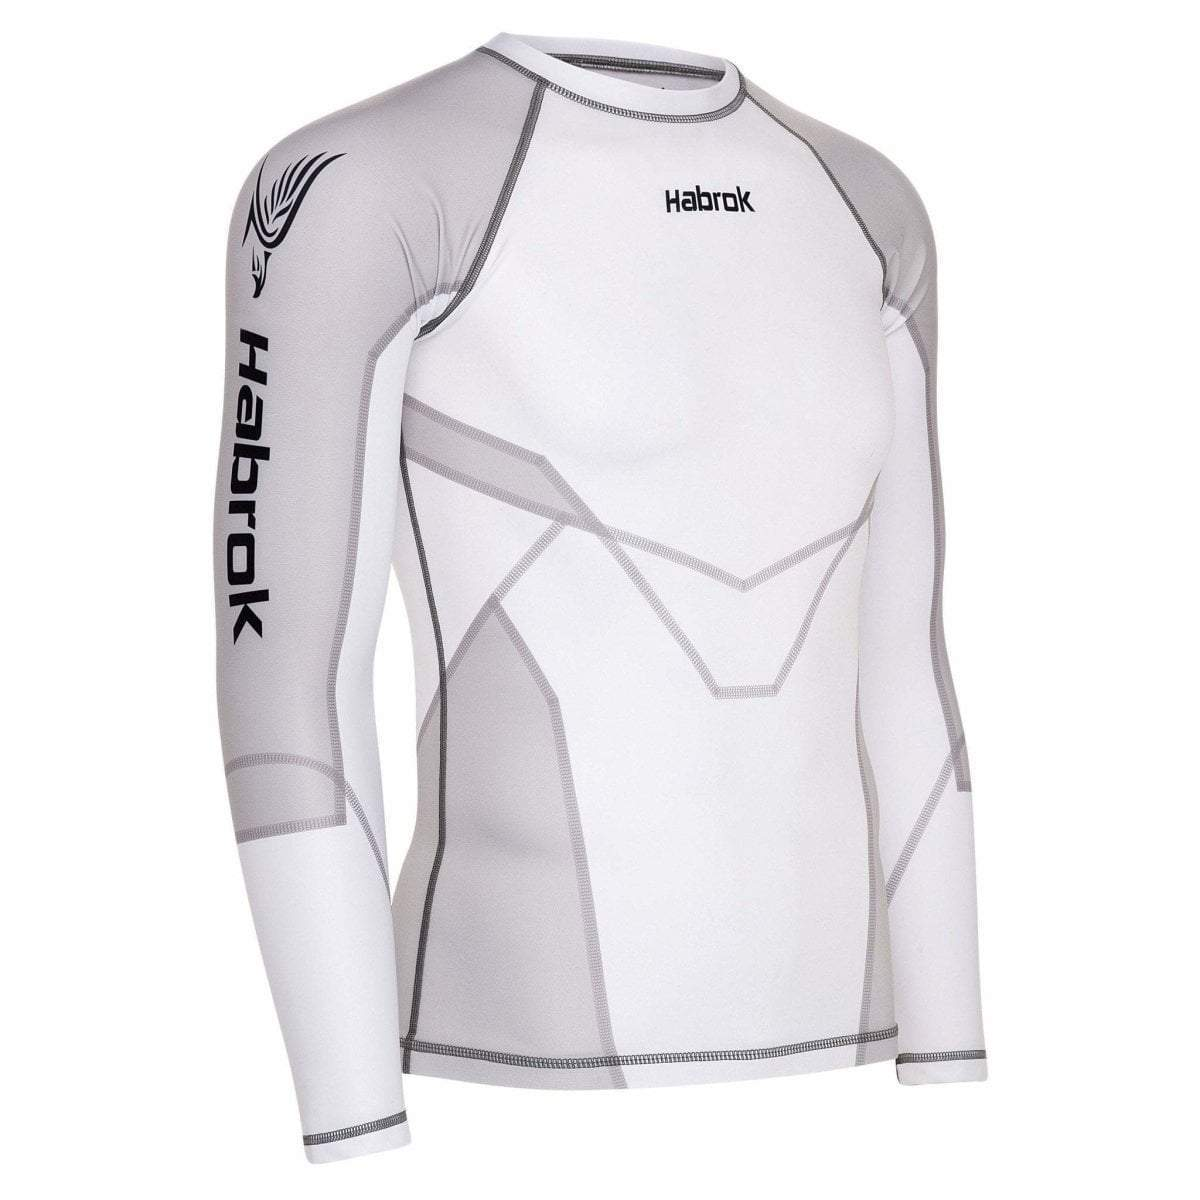 Habrok Rash Guard S / GREY Transform 2.5 | Rash Guard | Men